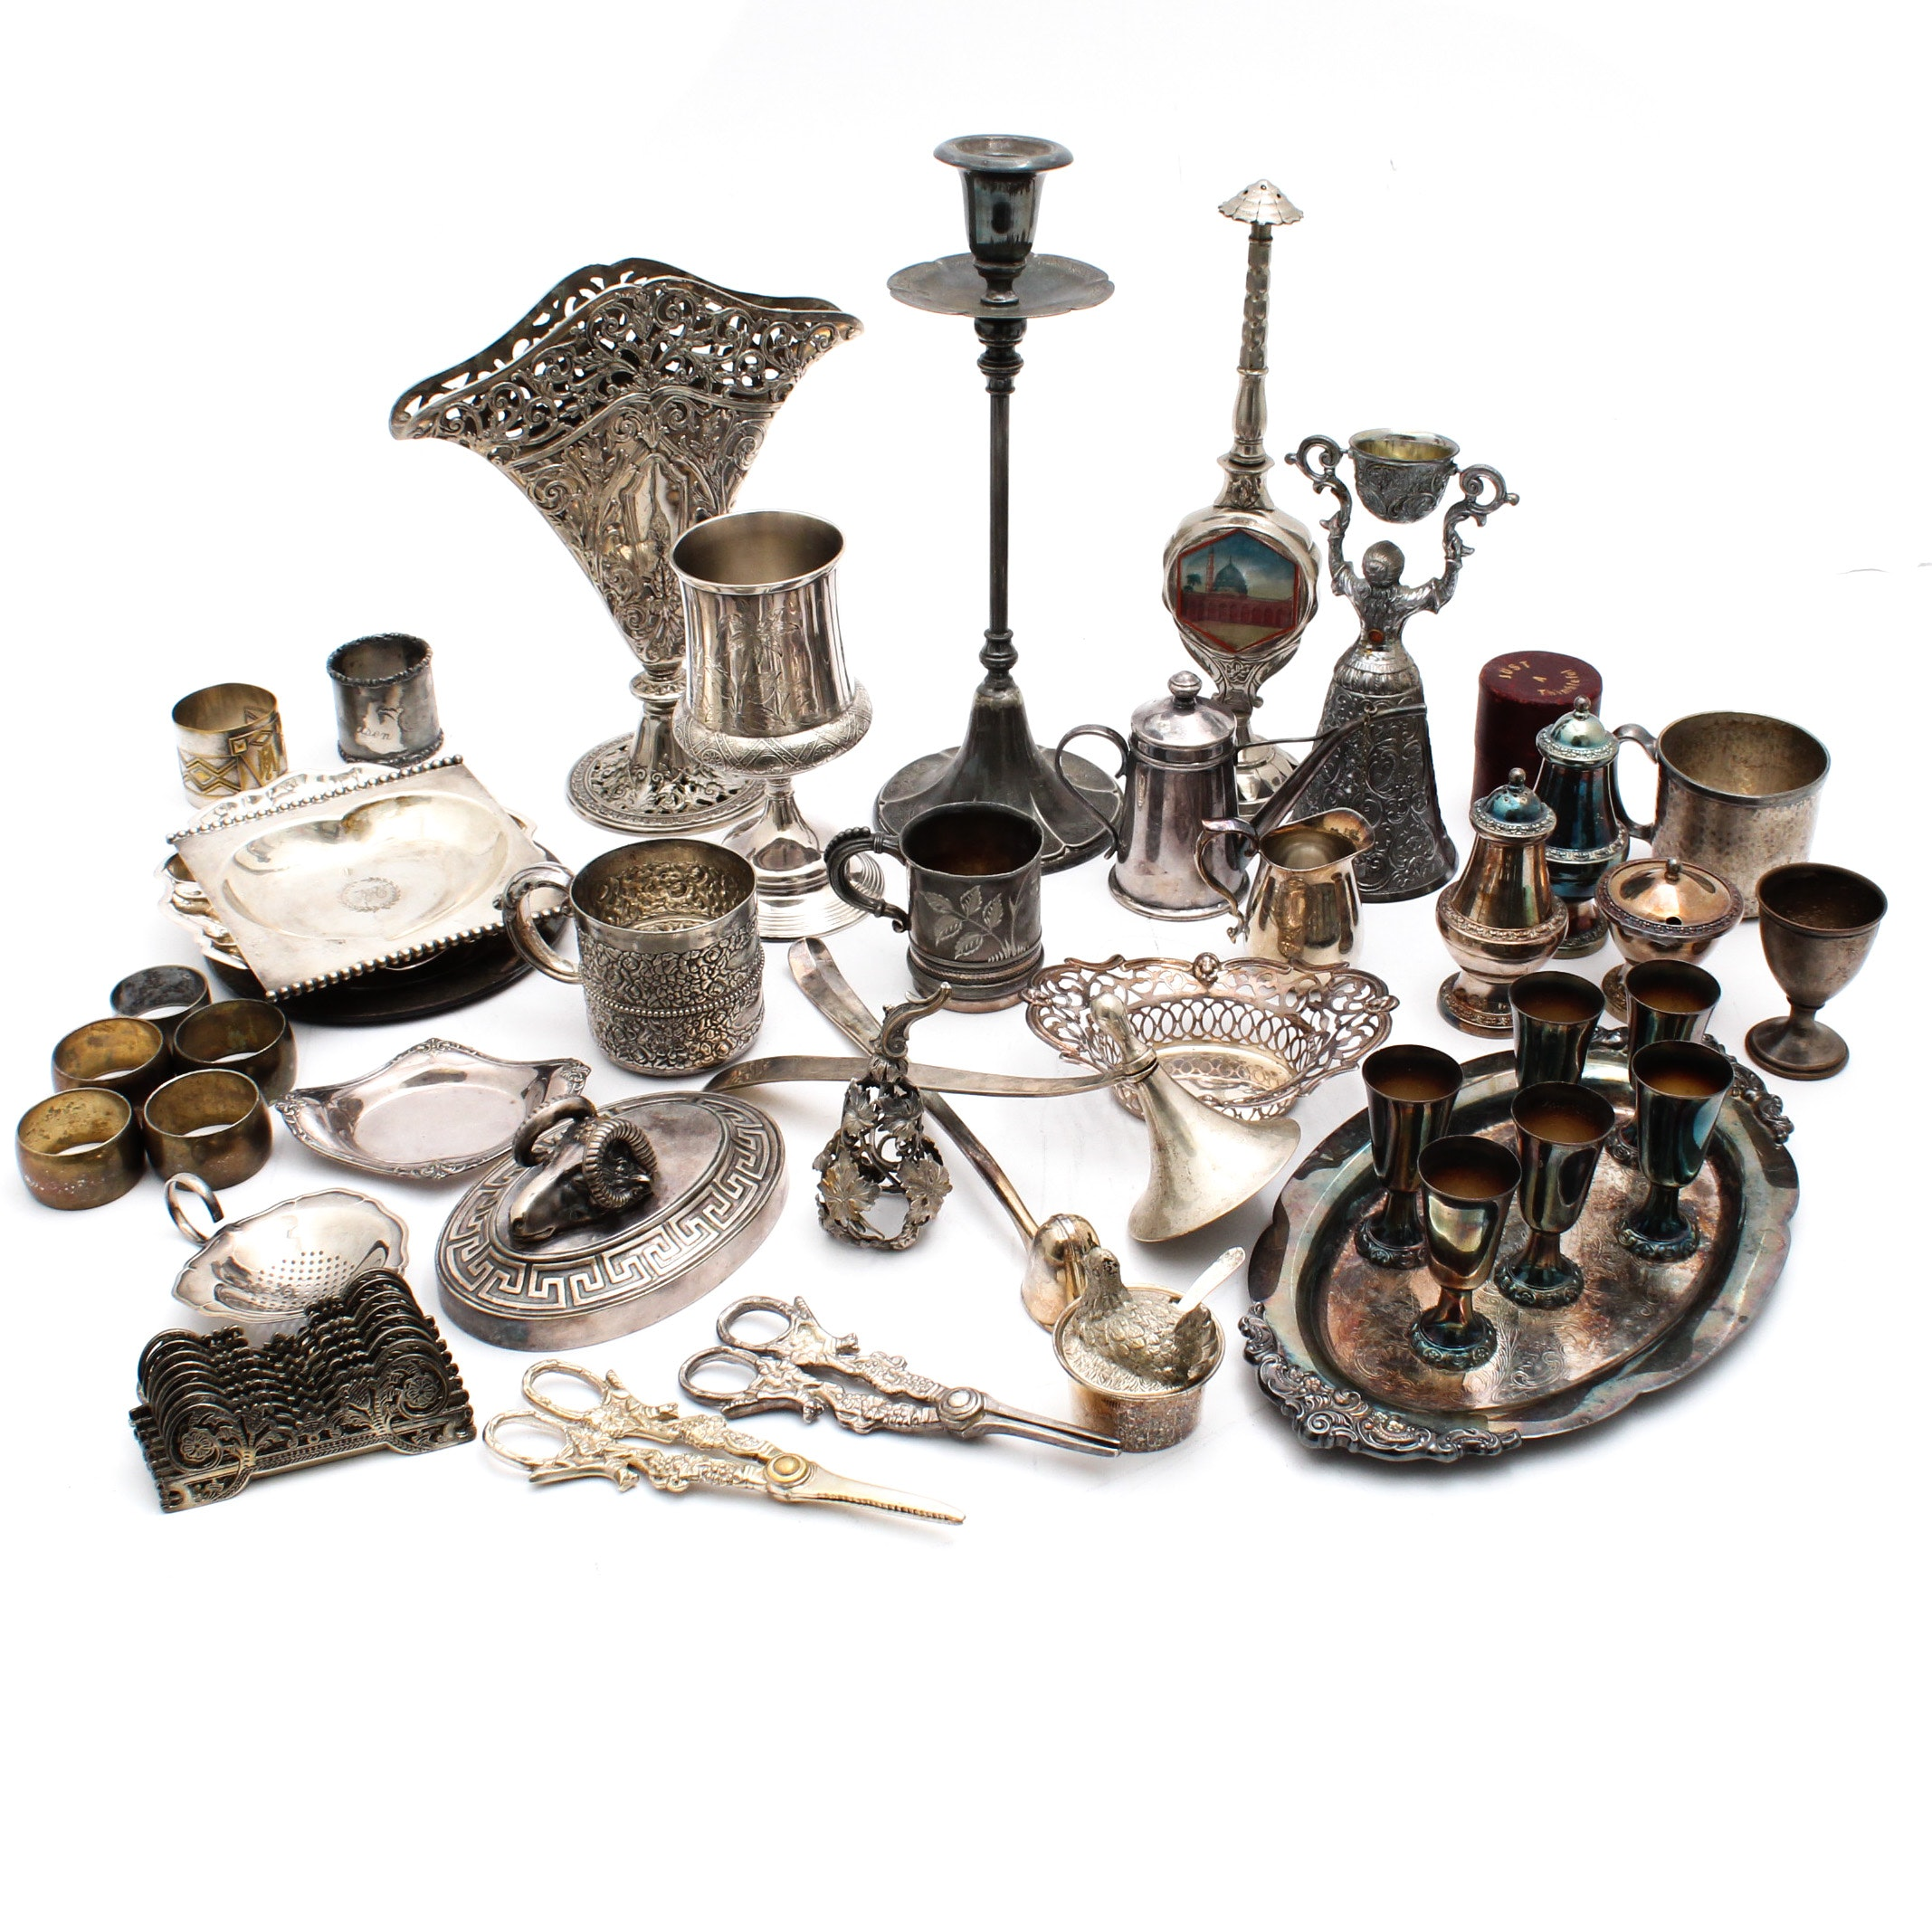 Silver Plate Accessories Featuring Tufts, Derby, Reed & Barton, Meriden,Godinger